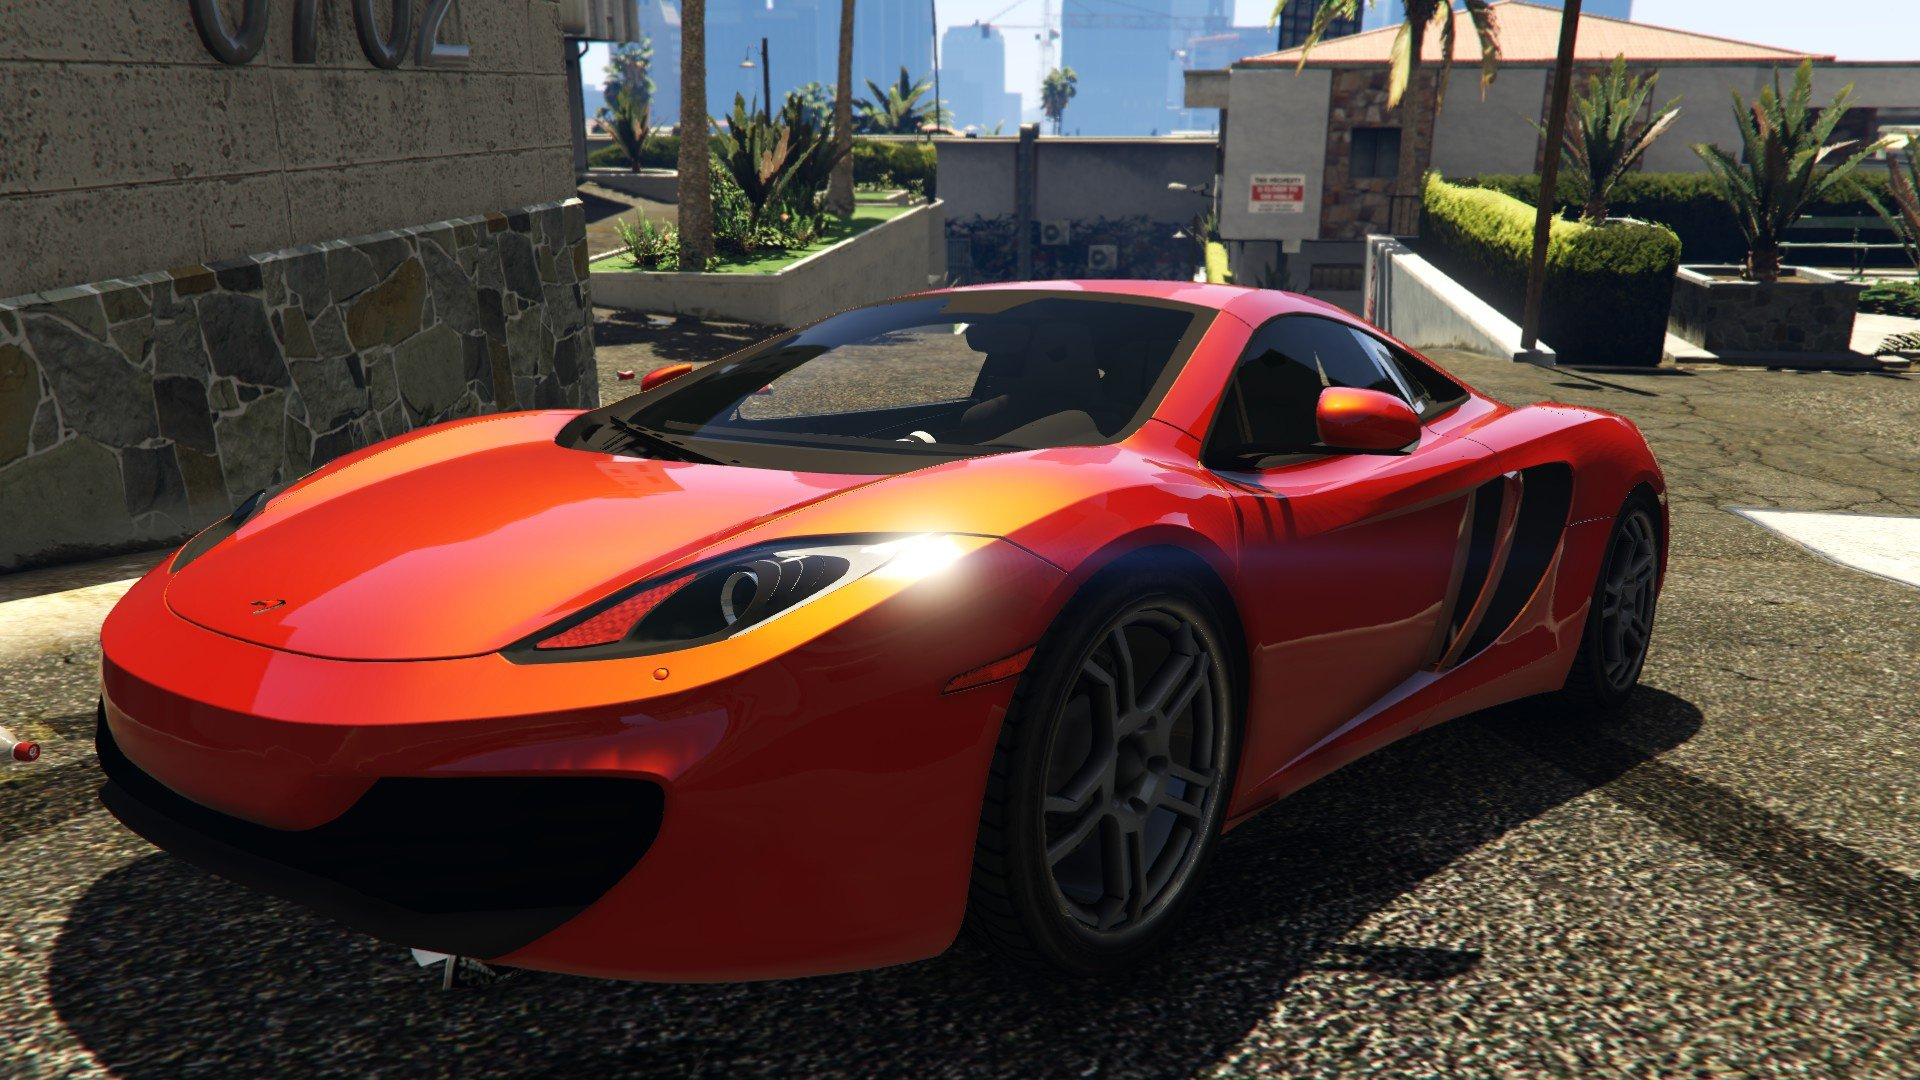 https://img.gta5-mods.com/q95/images/mclaren-mp4-12c-11/1801f9-2015-10-31_00007.jpg